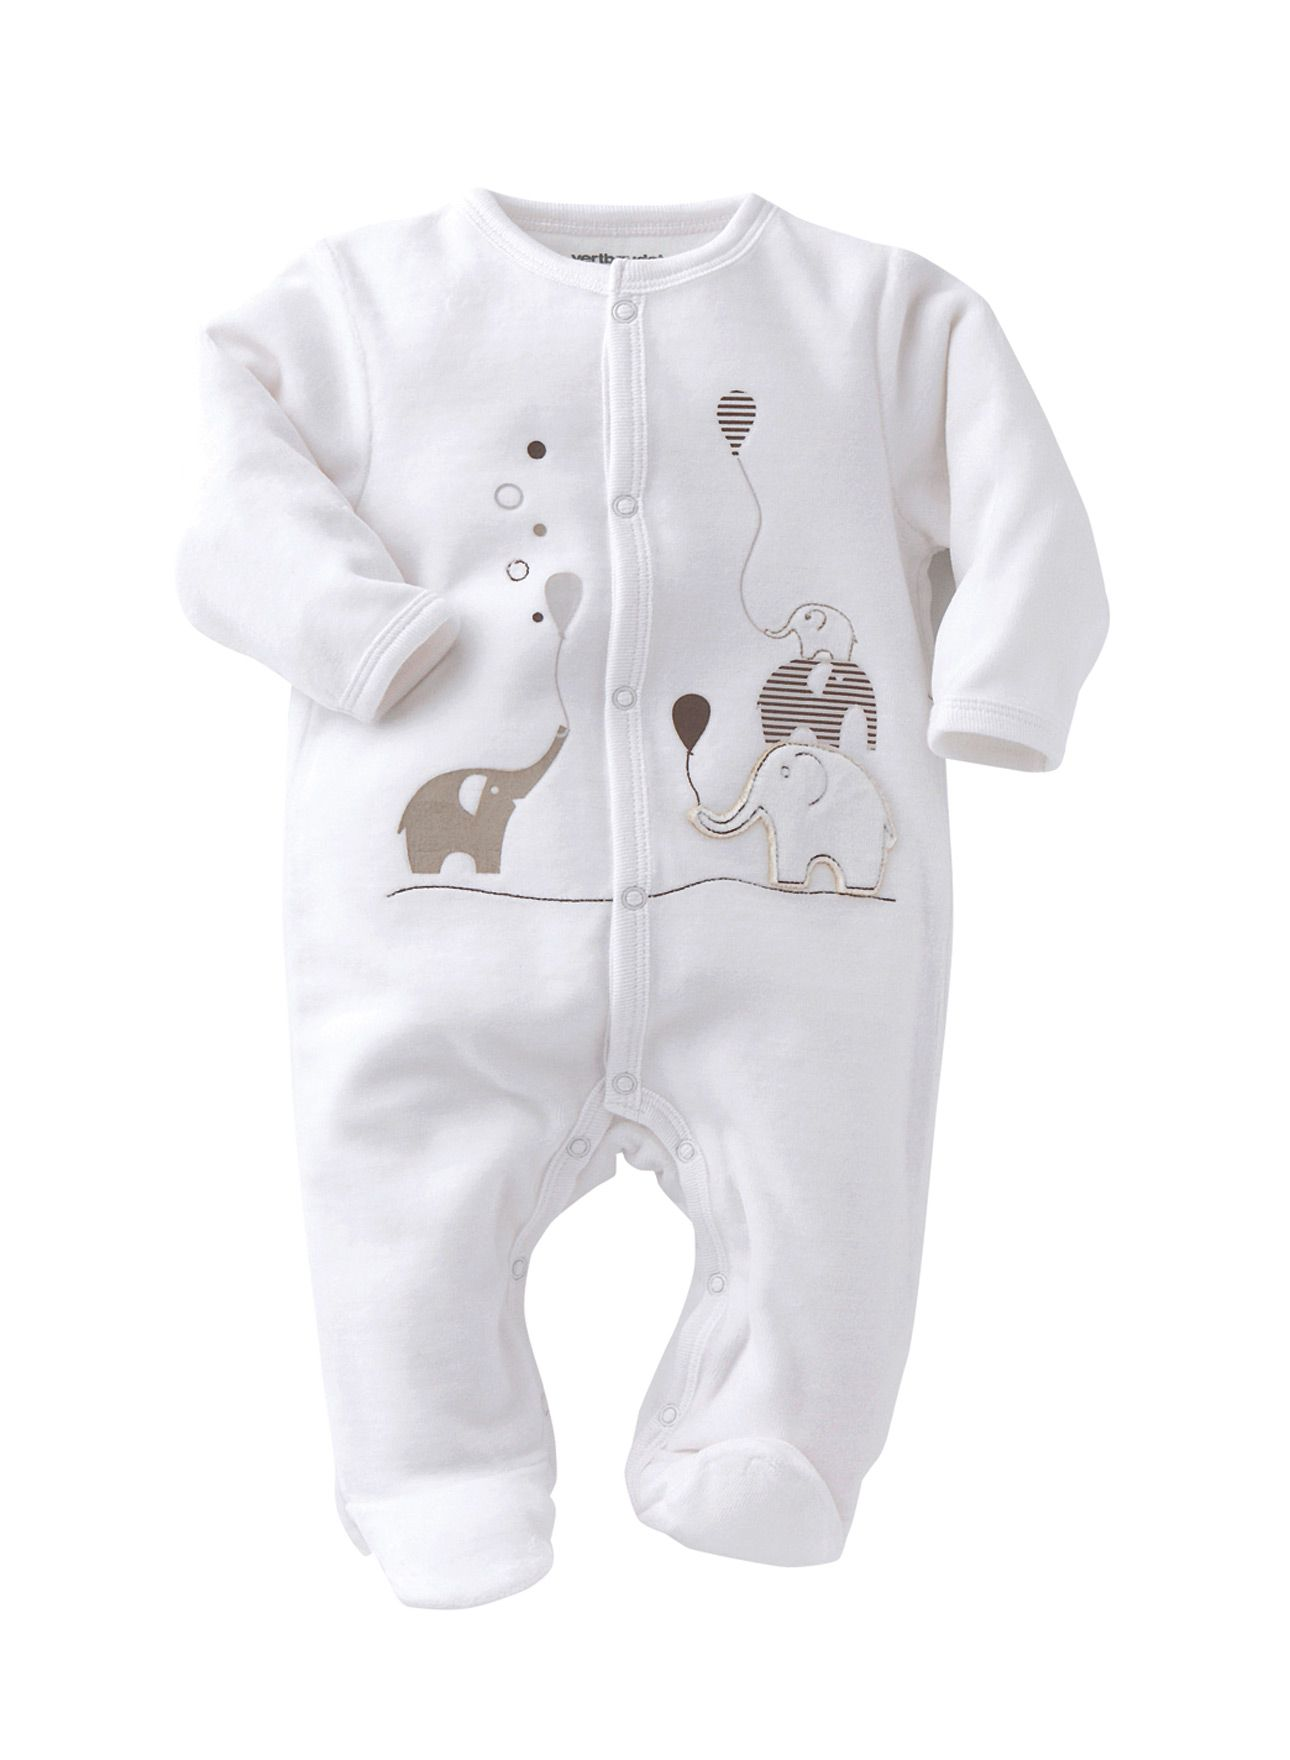 e5a82a65ed20 Gender Neutral Baby Clothes · Aww how cute is this baby gro? Lovely white  outfit for a newborn. The